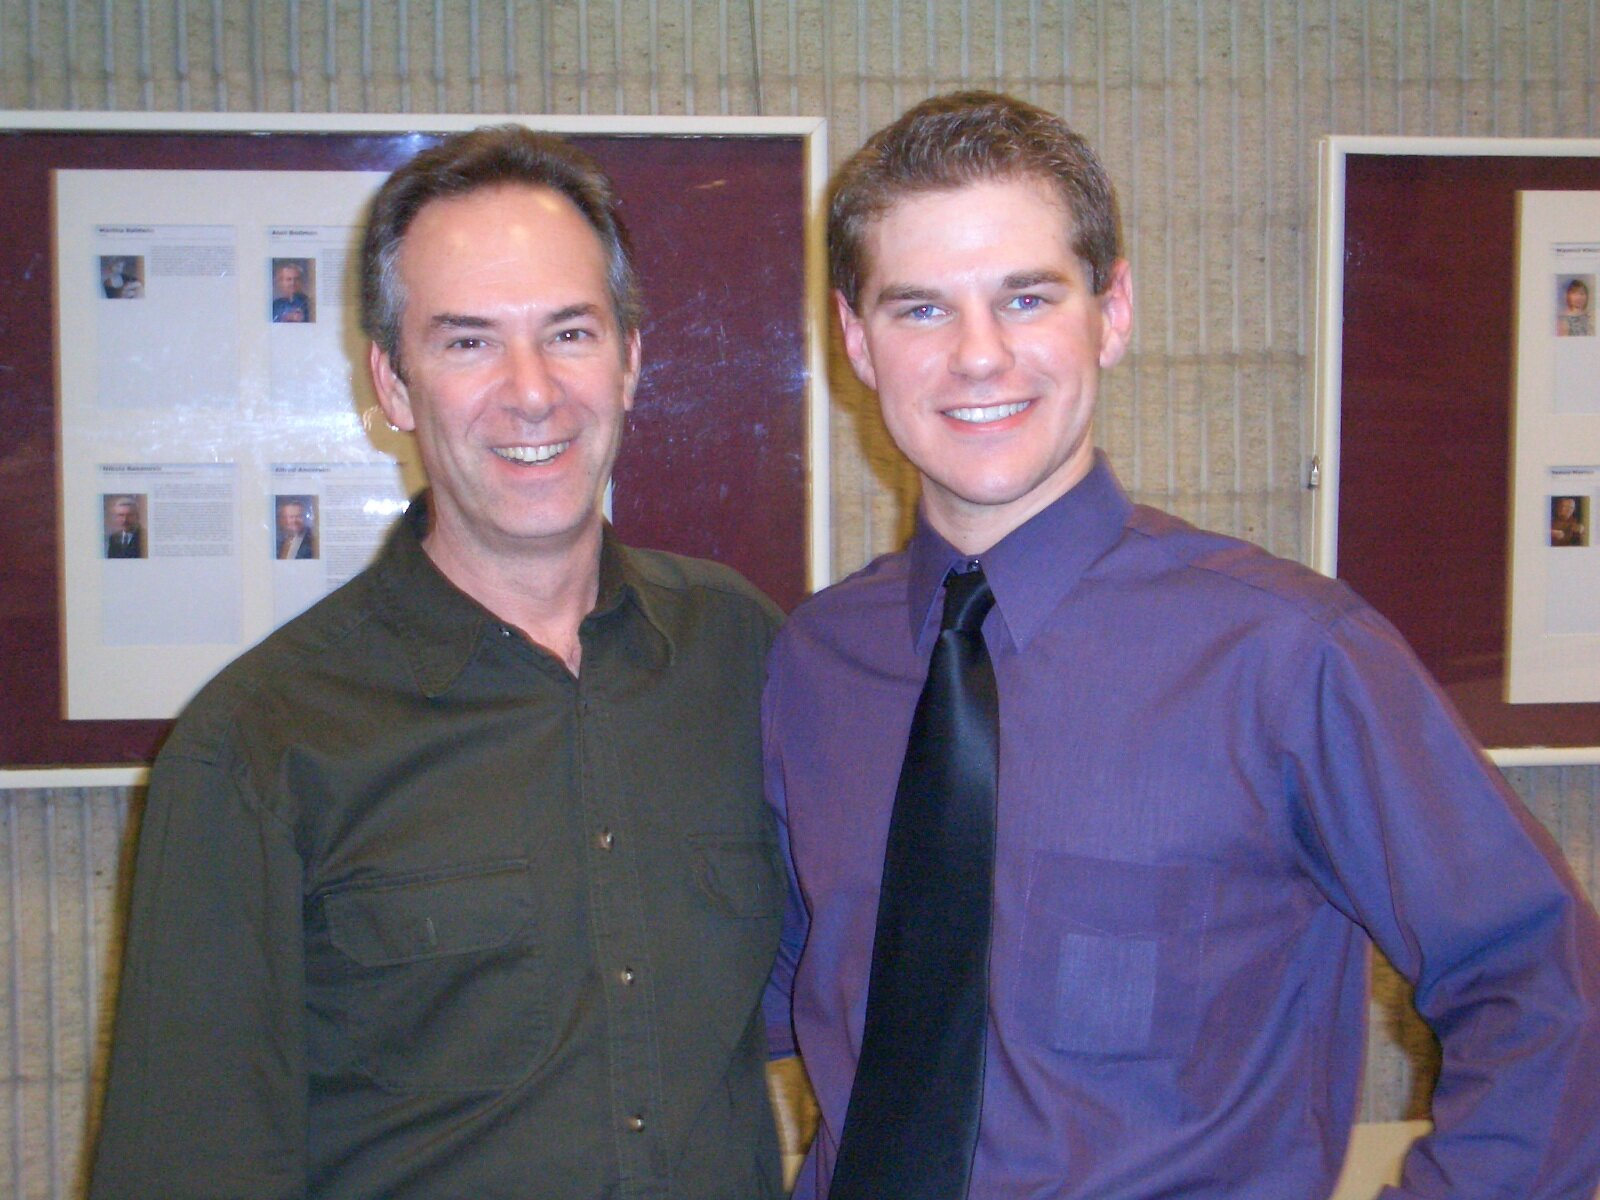 With Stephen Aron after Senior Recital at U of Akron